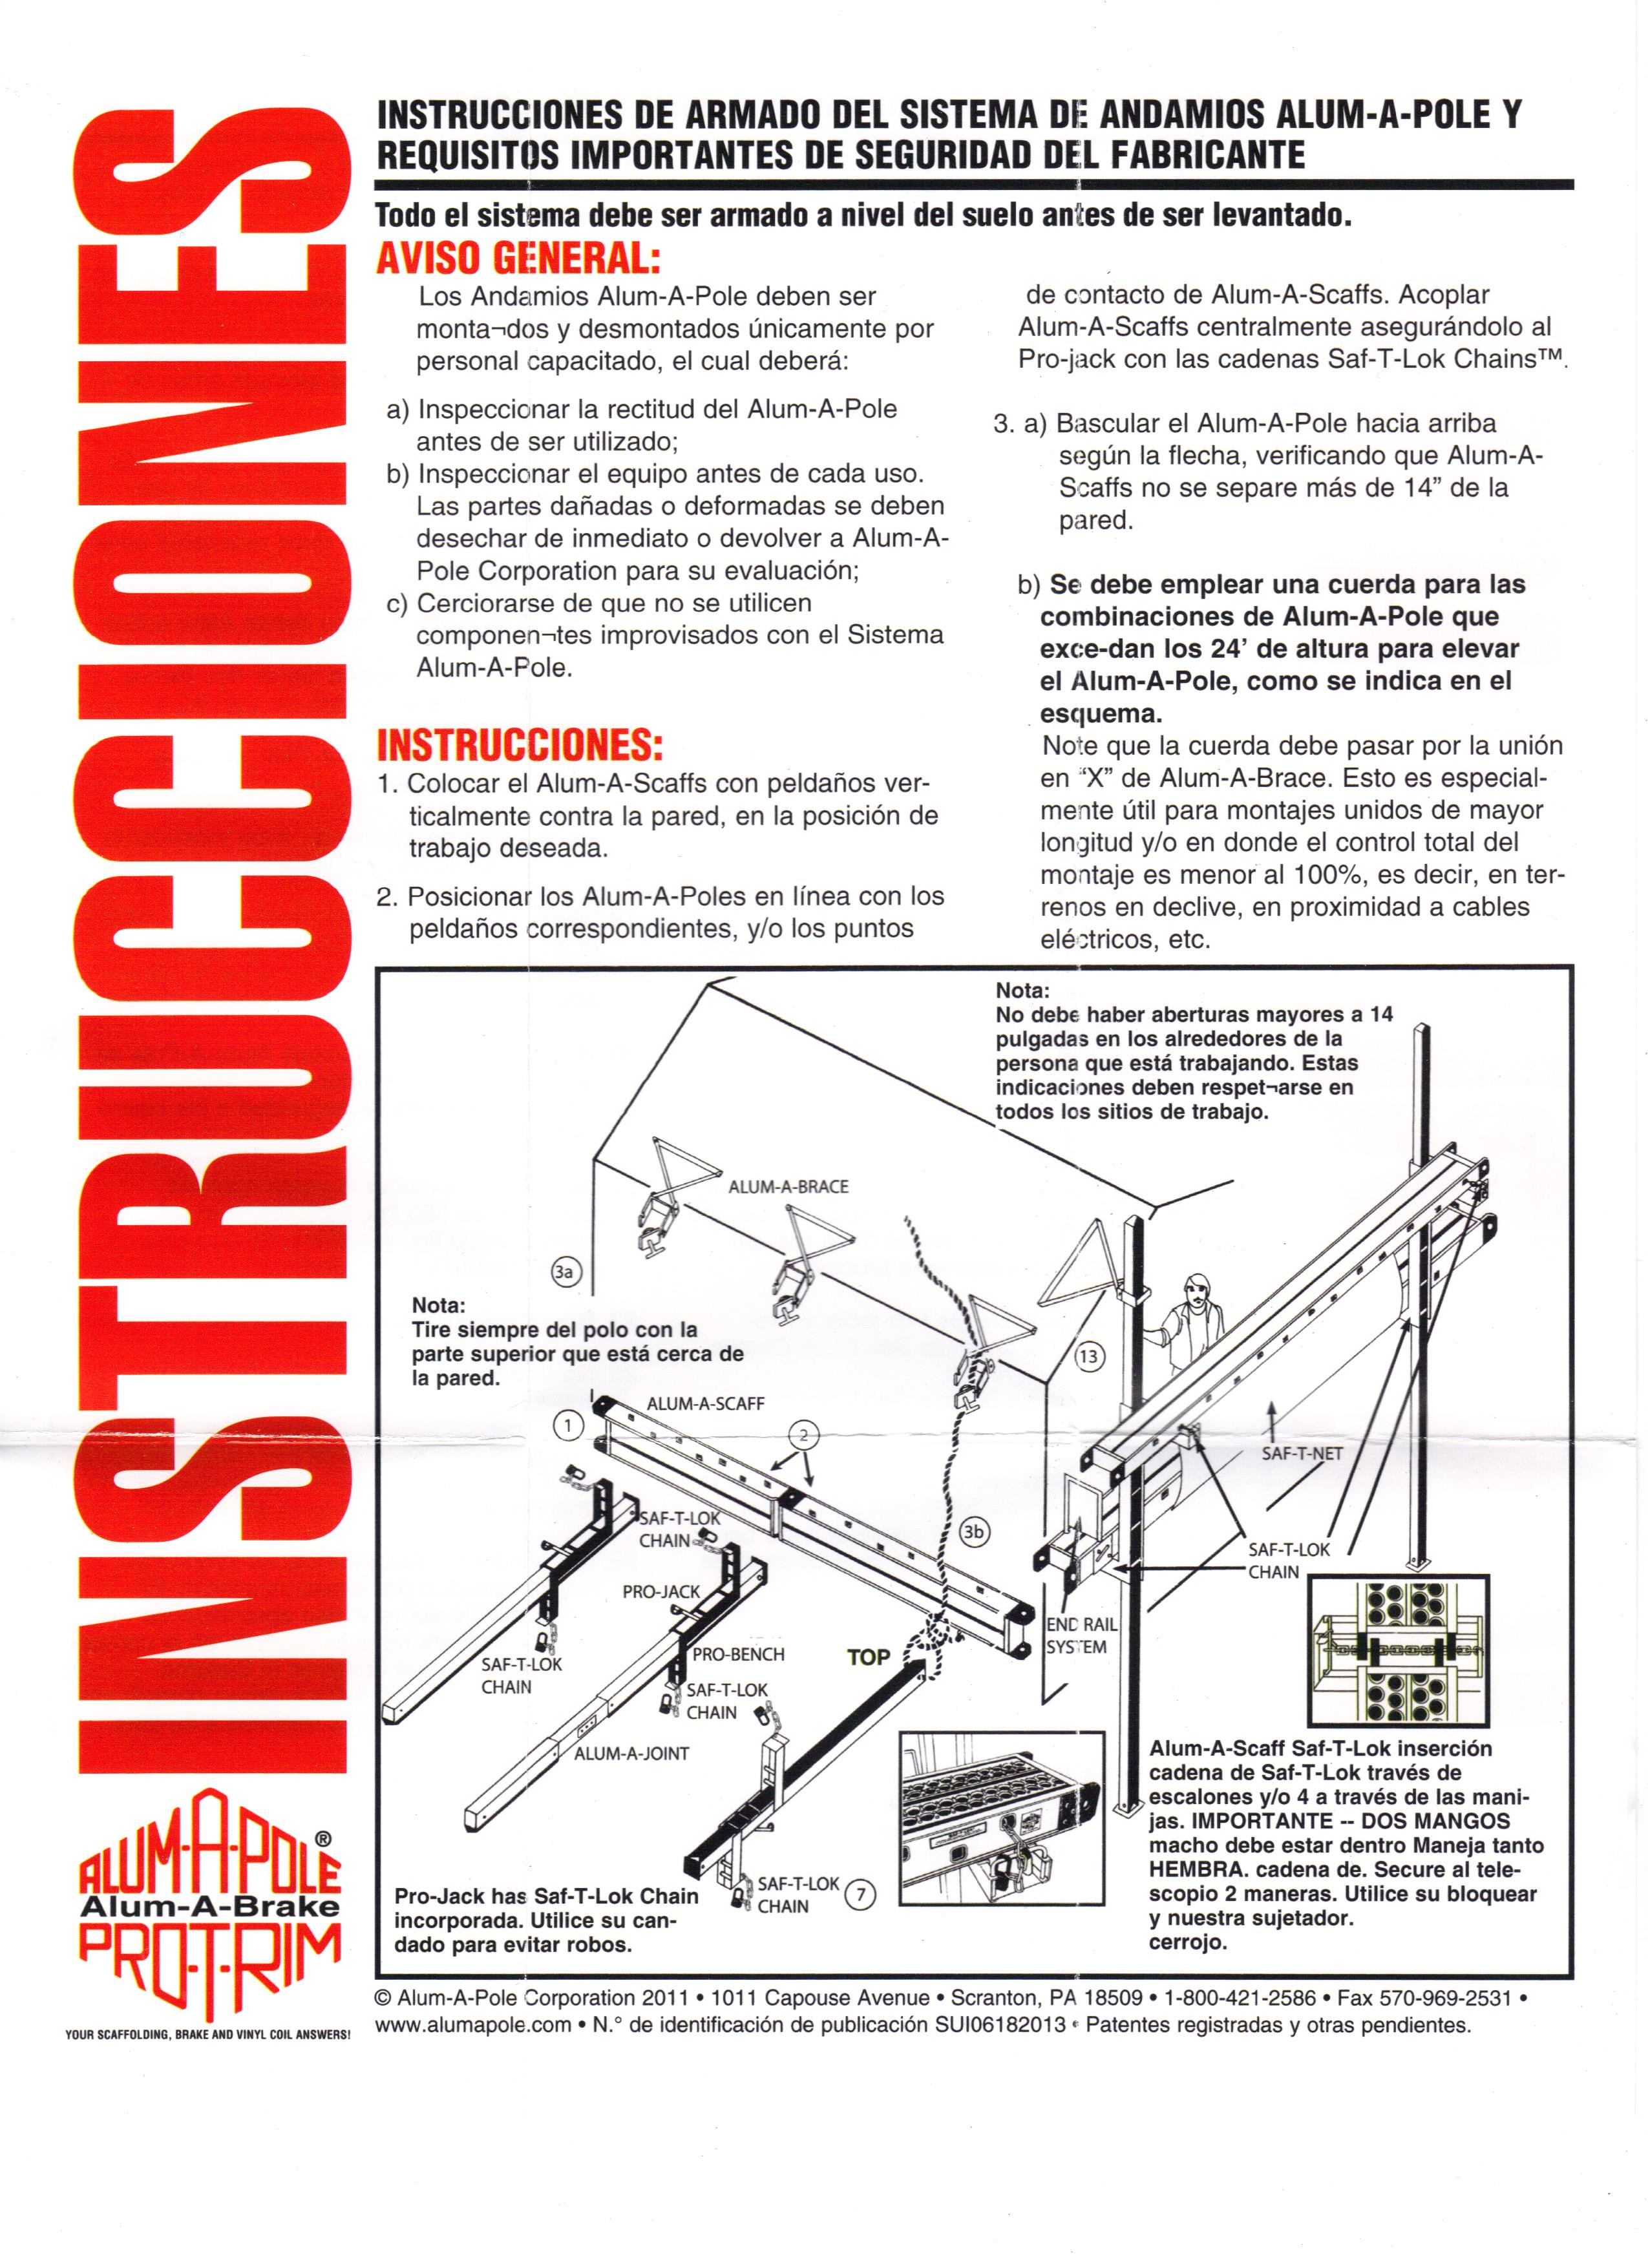 spanish-instructions-pg-1.jpg